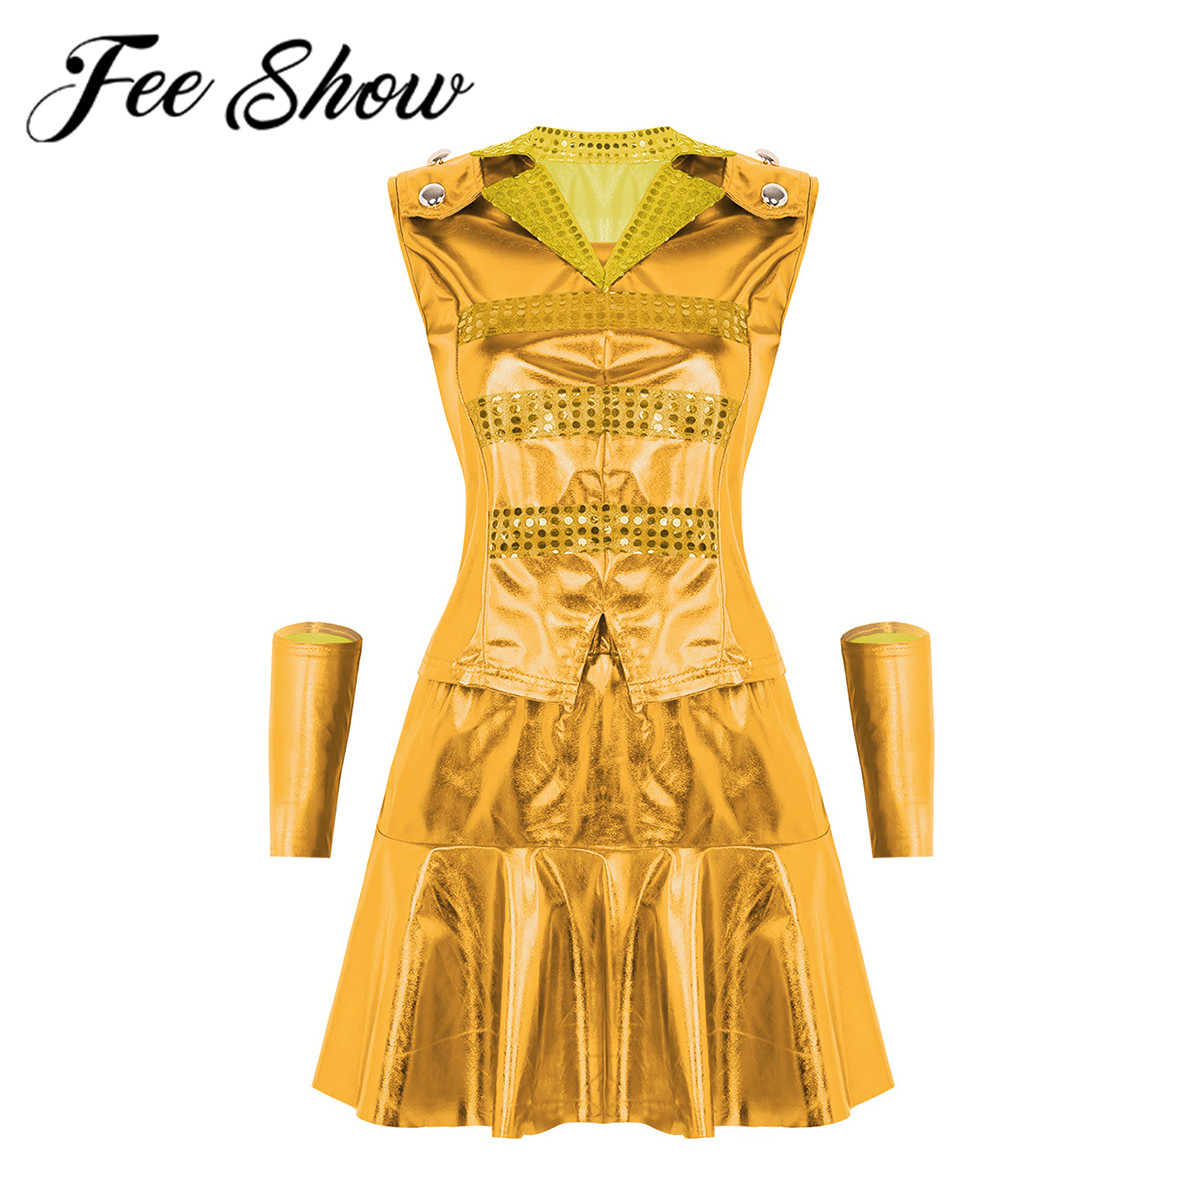 Women Shiny Metallic Modern Jazz Hip Hop Street Show Dancewear Contemporary Dance Costume Lapel Collar Top & Ruffled Short Skirt